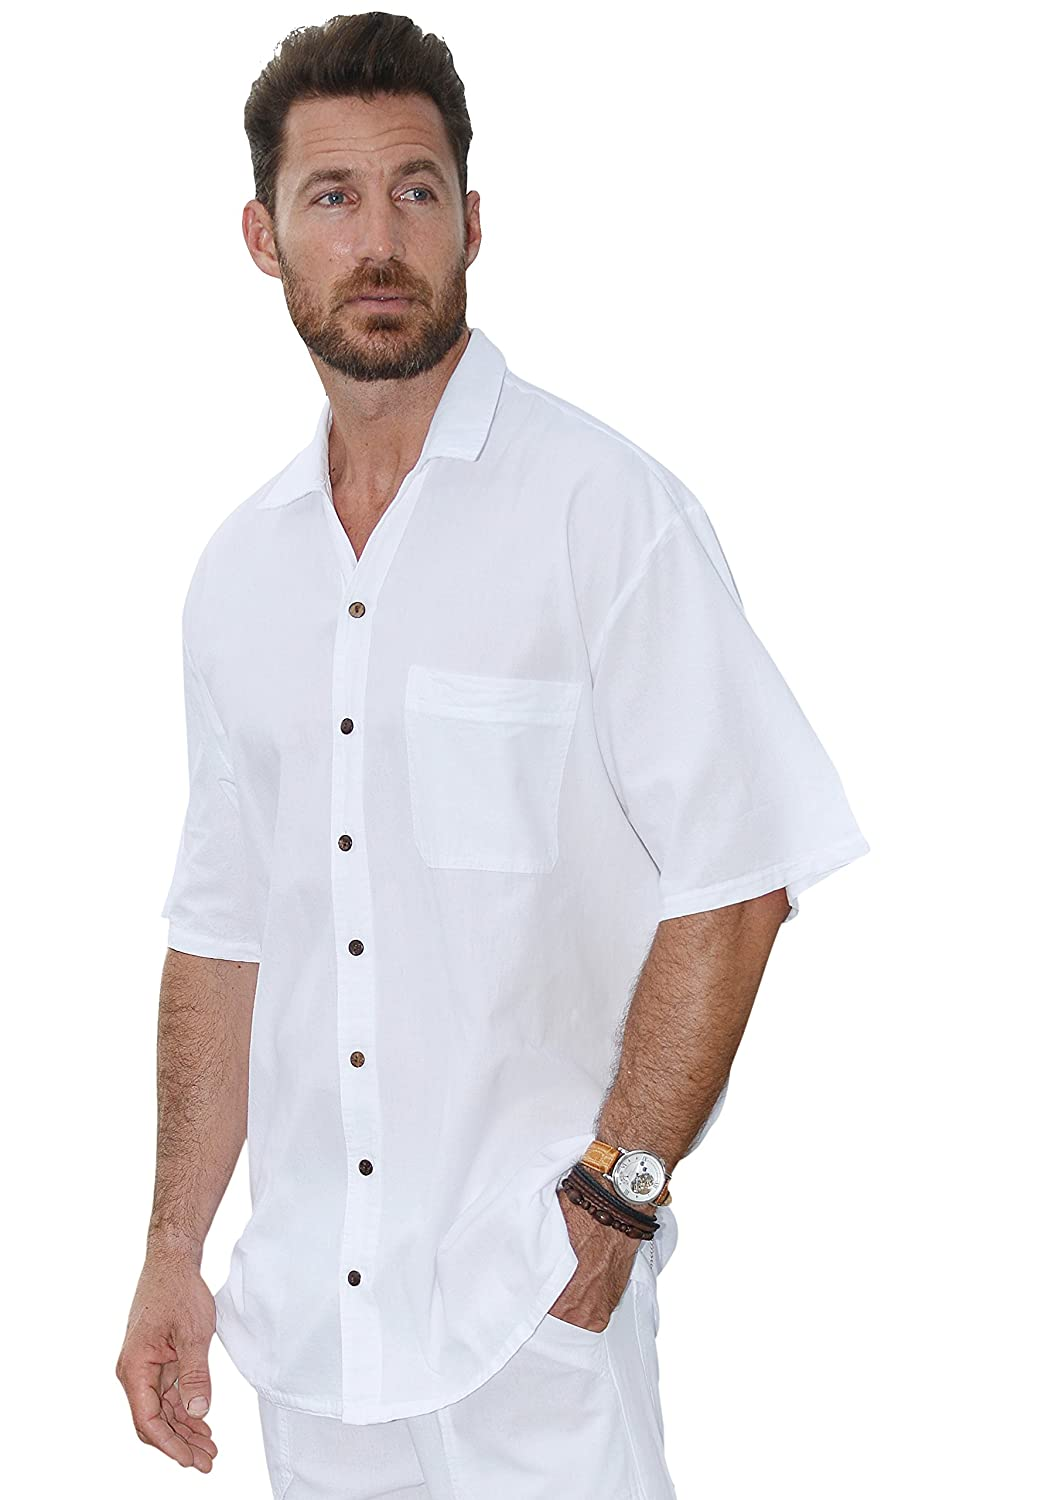 Cotton Natural Mens Casual Button Down Peruvian Pima Cotton Short